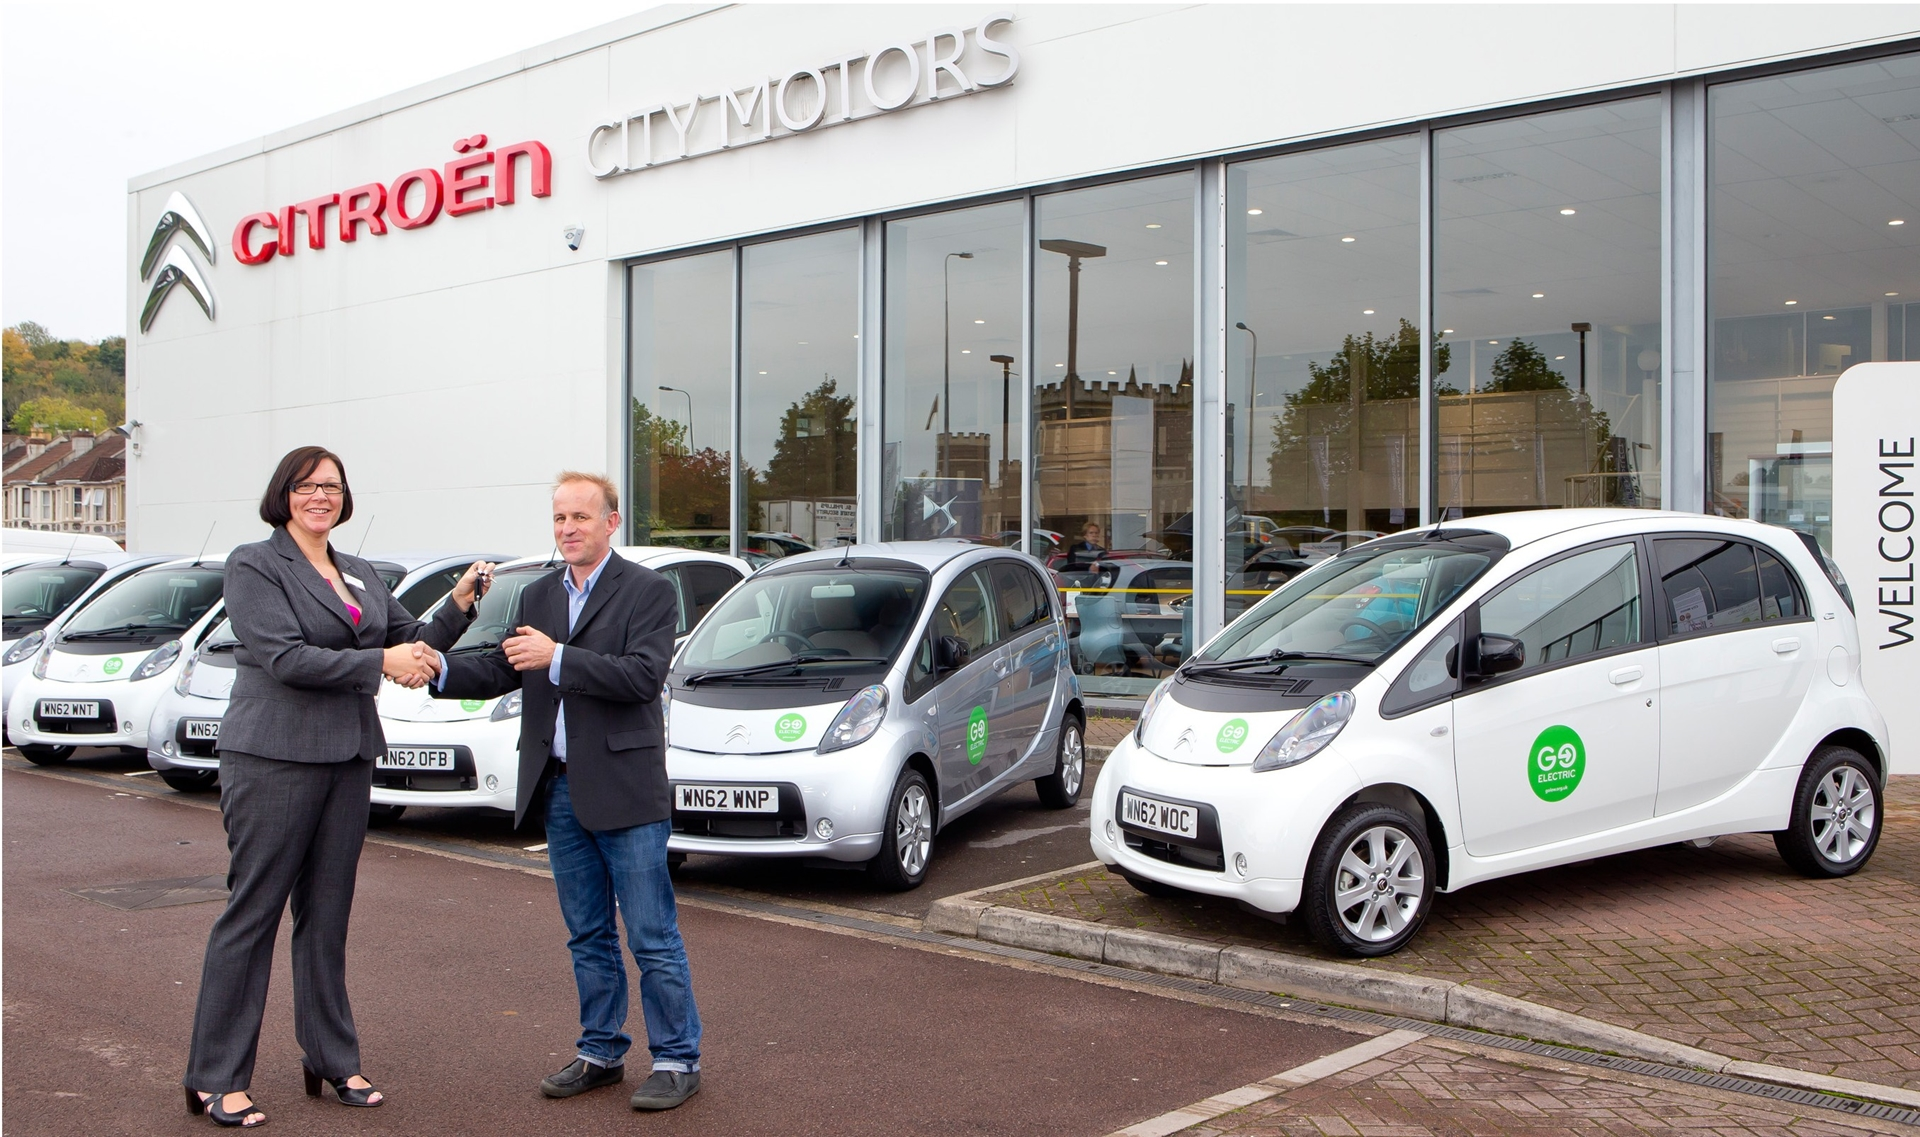 Citroen city motors